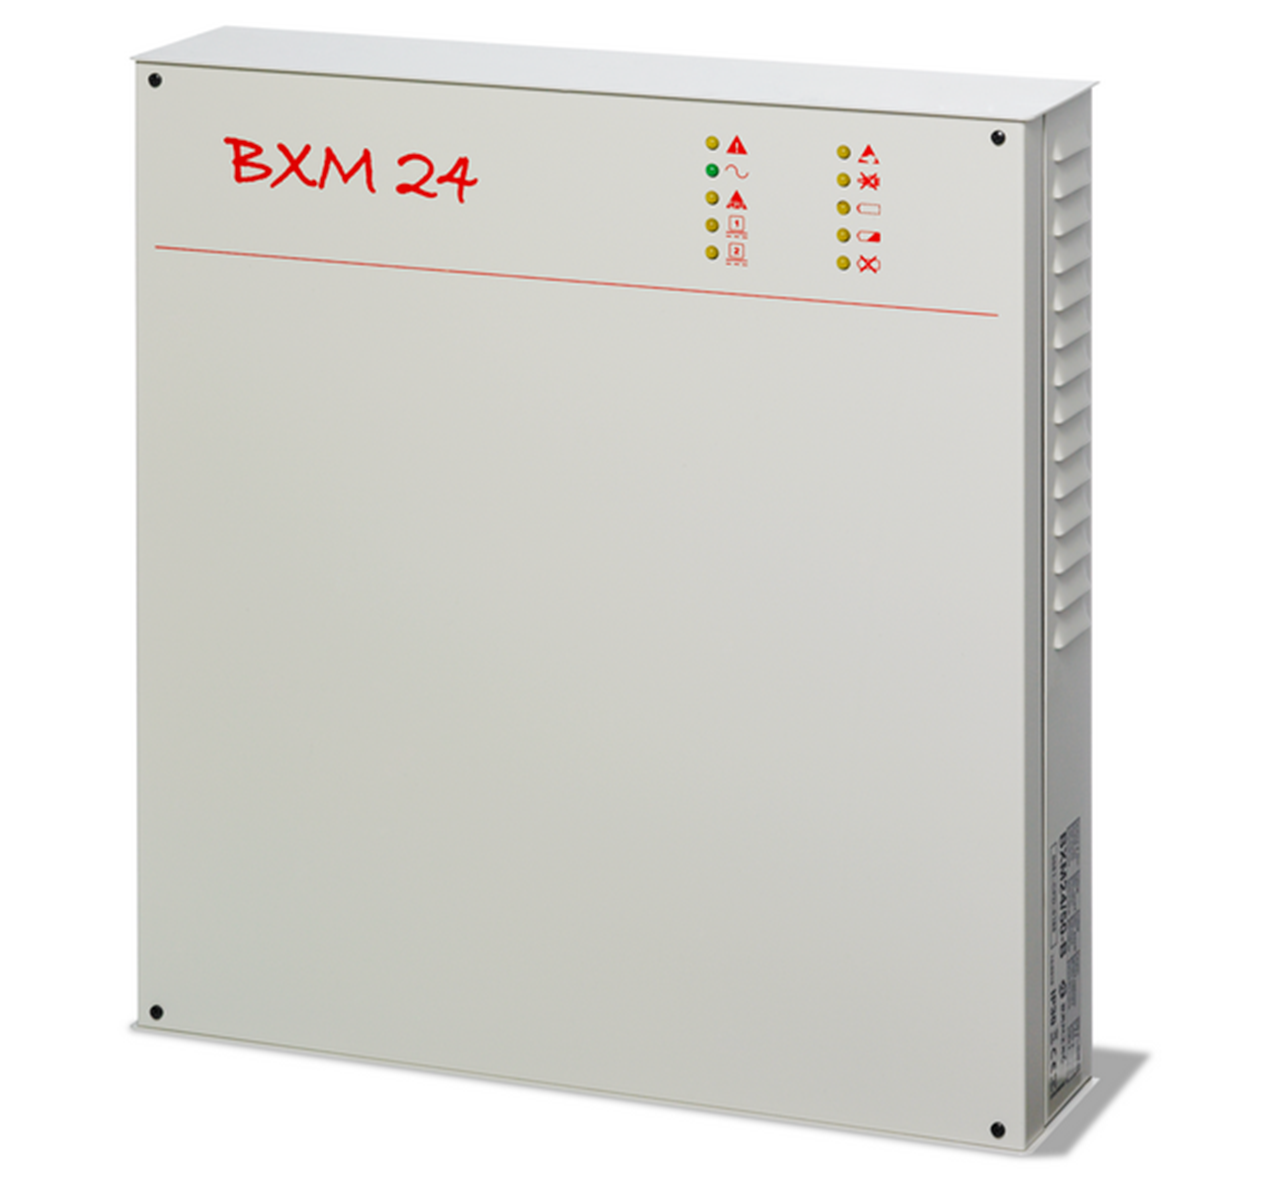 Bentel security BXM24/25-B - Microprocessor Controlled Power Station Armenia Vantag LLC